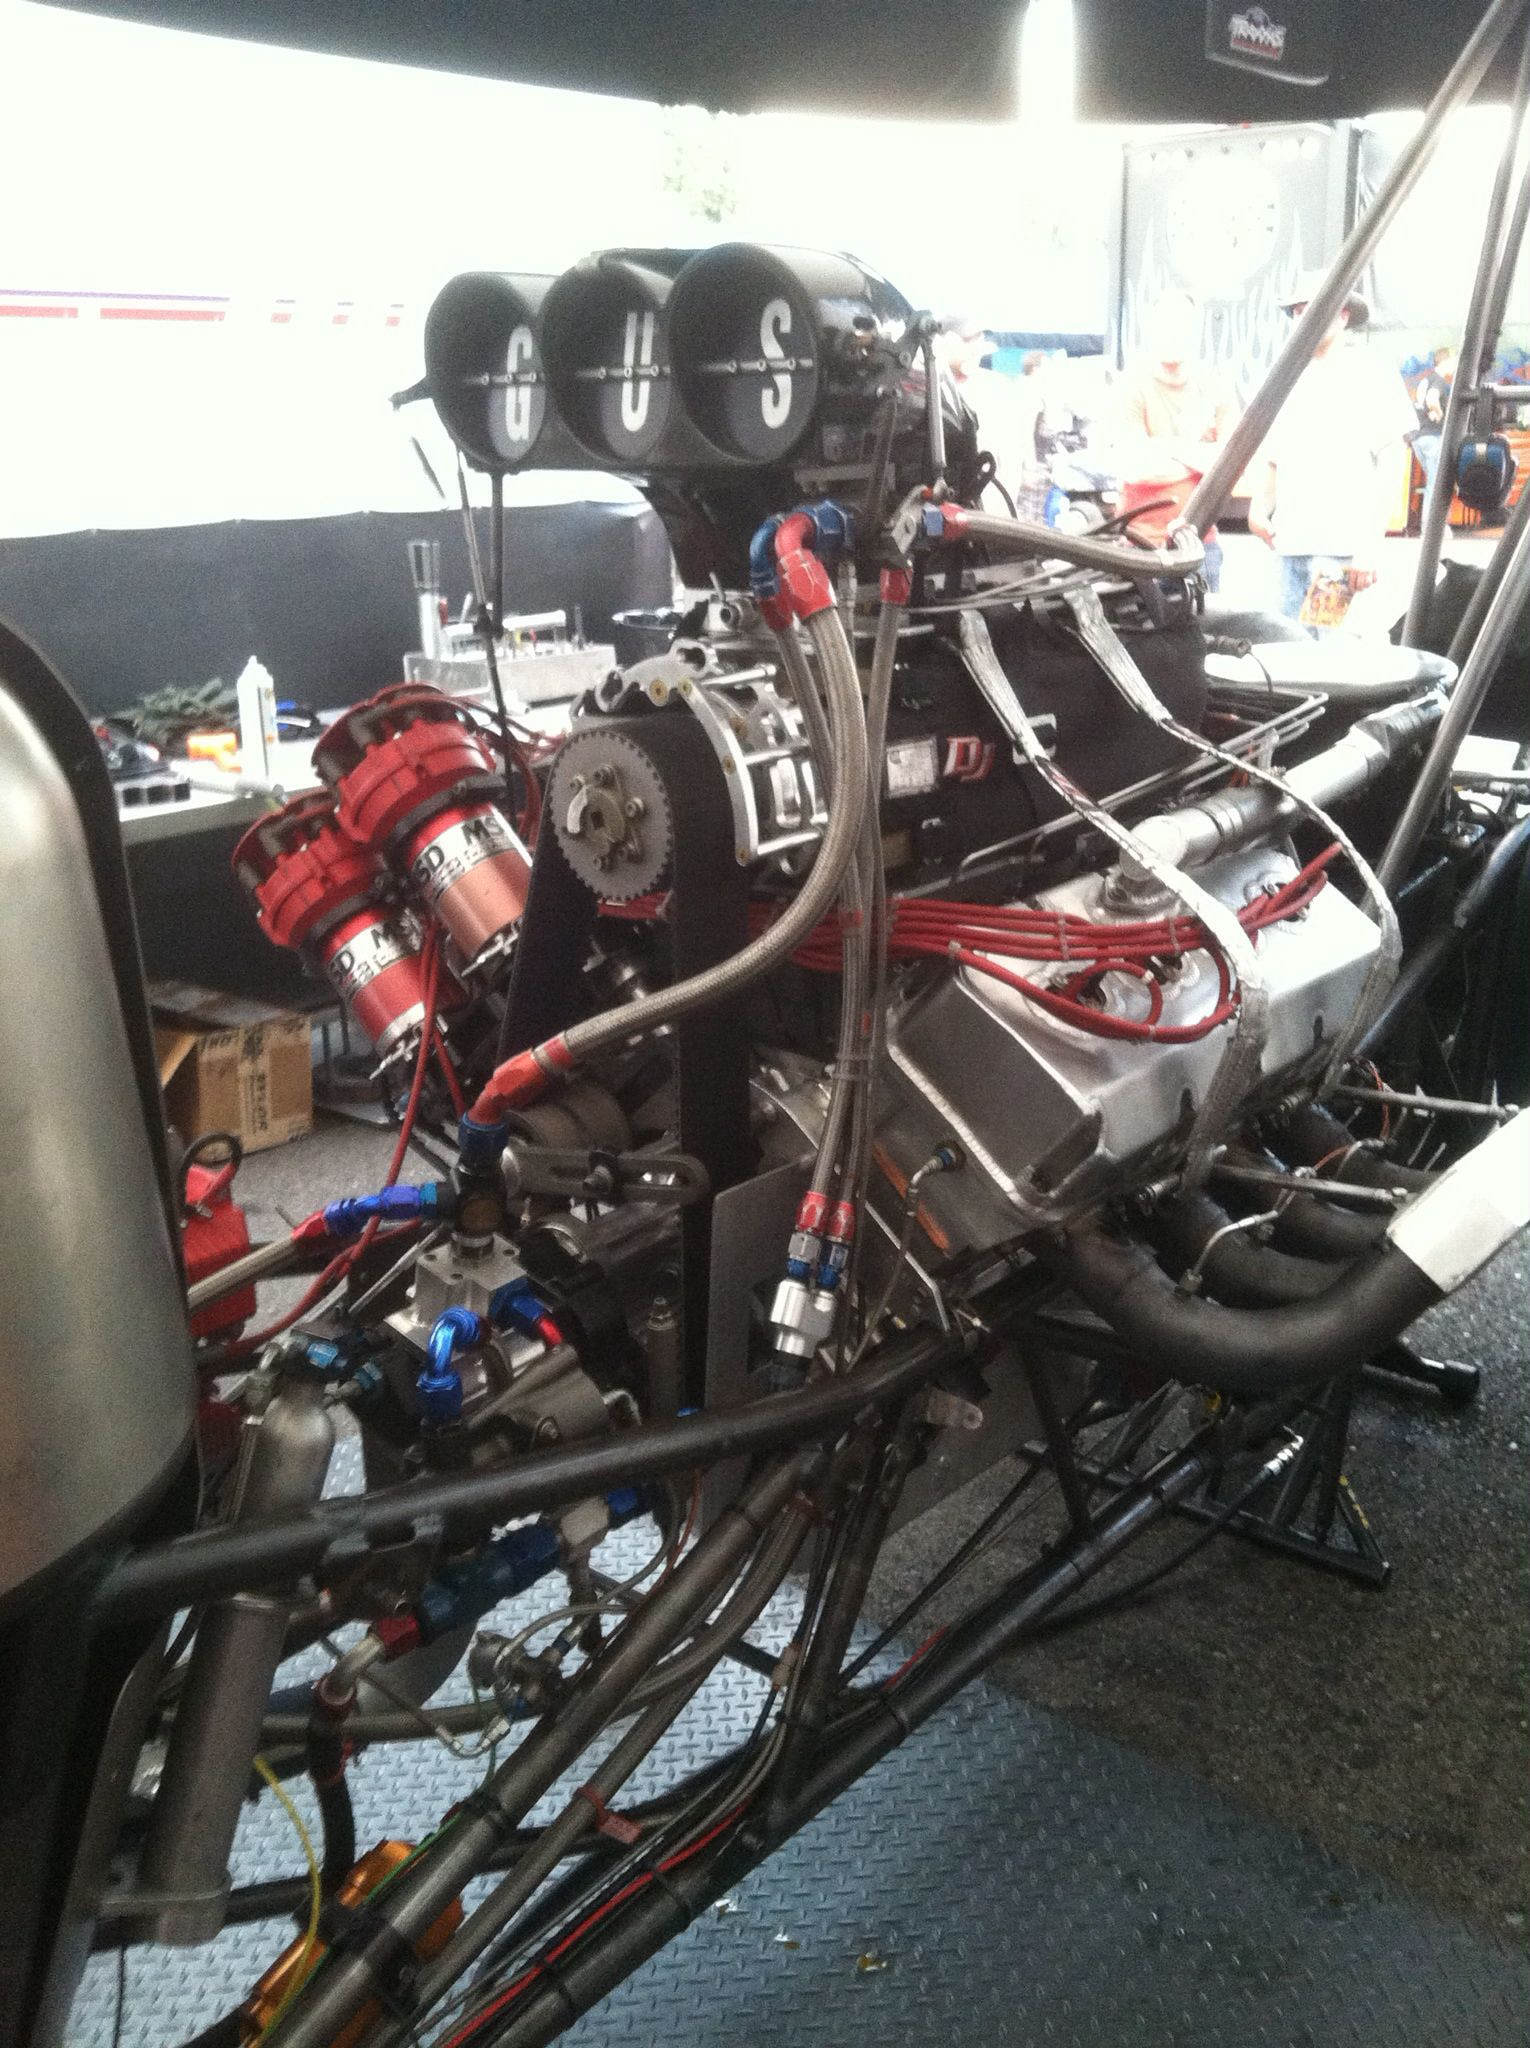 Top fuel dragster engine